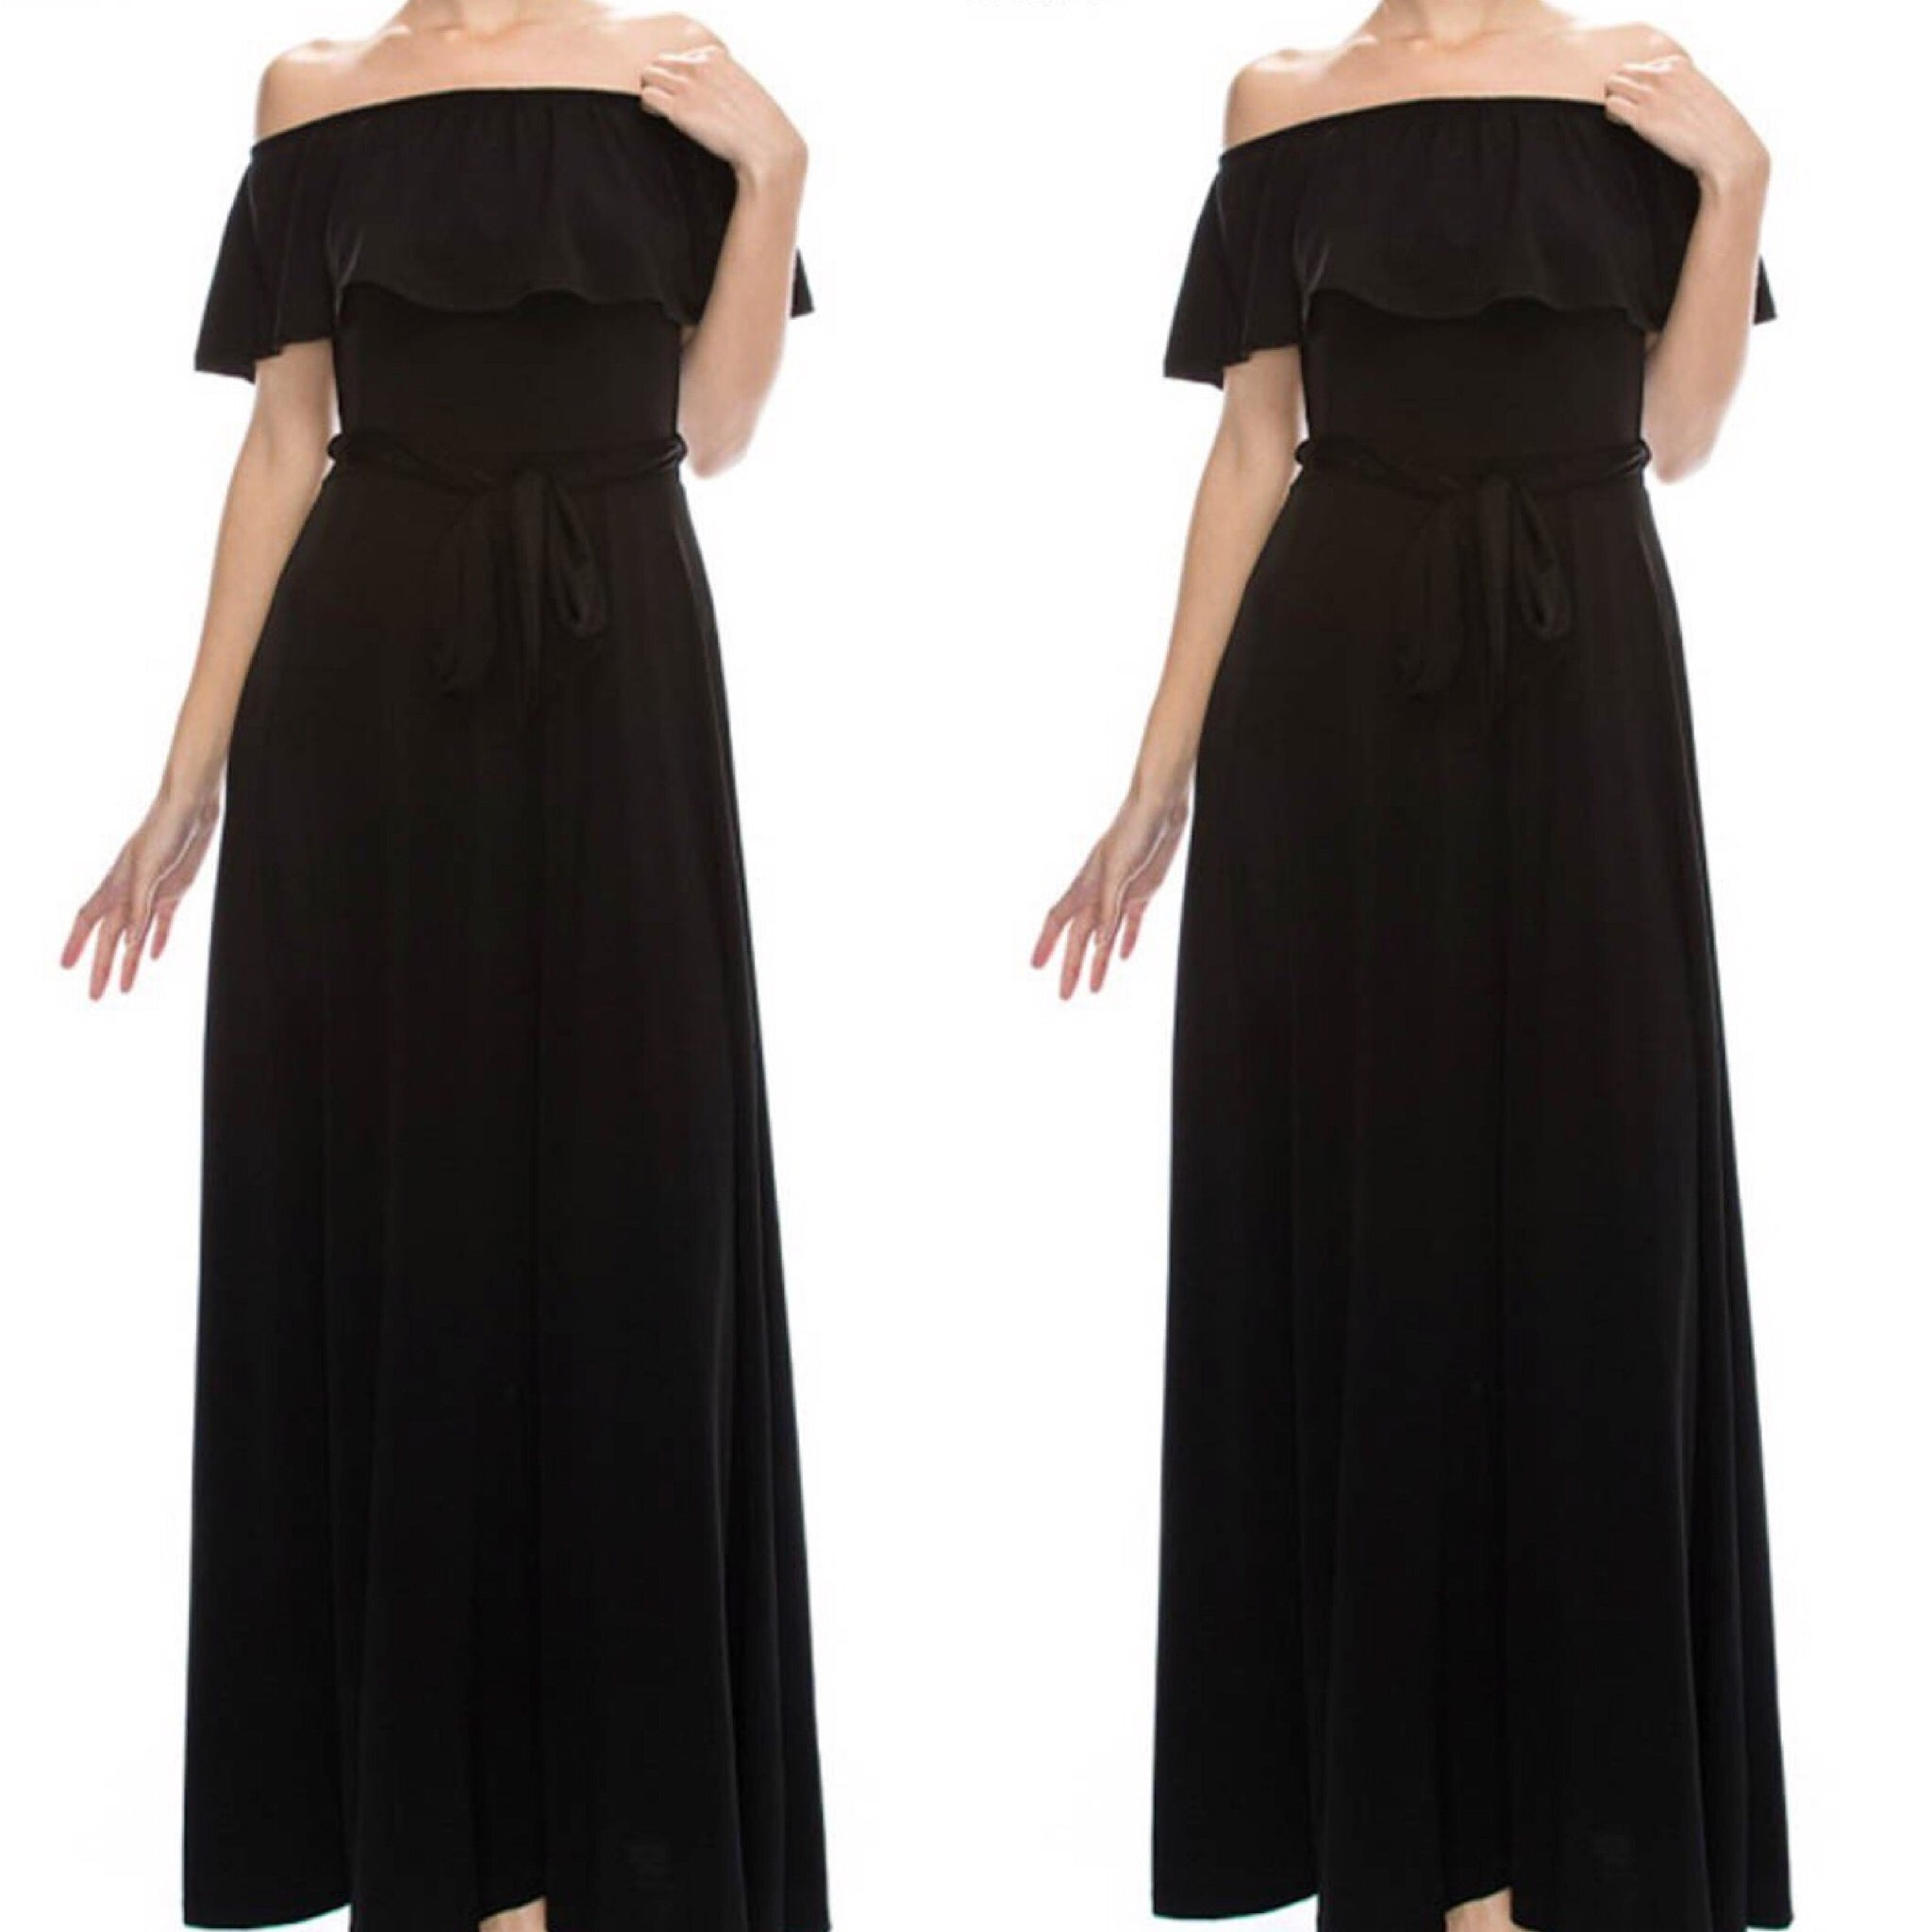 Black Off The Shoulder Long Maxi Dress - socialbutterflycollection-com (731937177661)